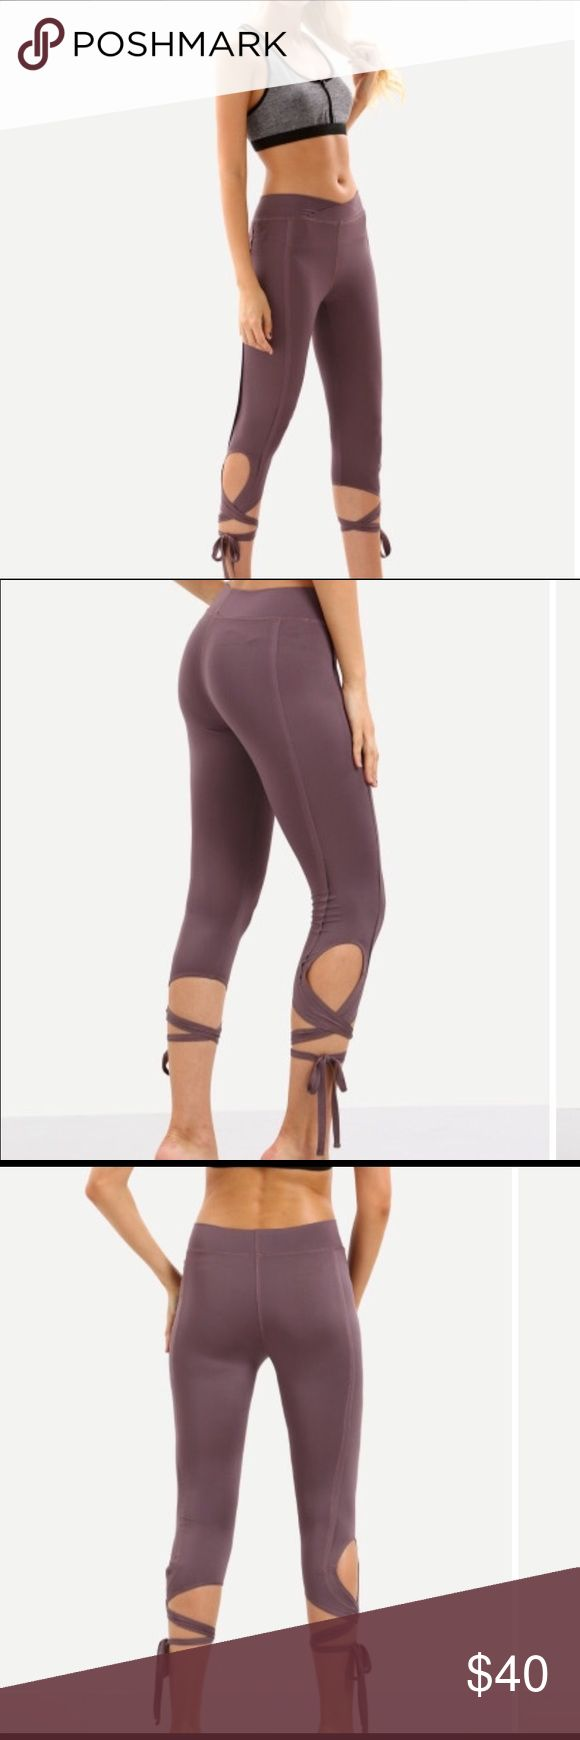 Purple tie leggings Work out in style!!!  For the gym or just lounging!!!  Super comfy & cute!!! Pants Leggings